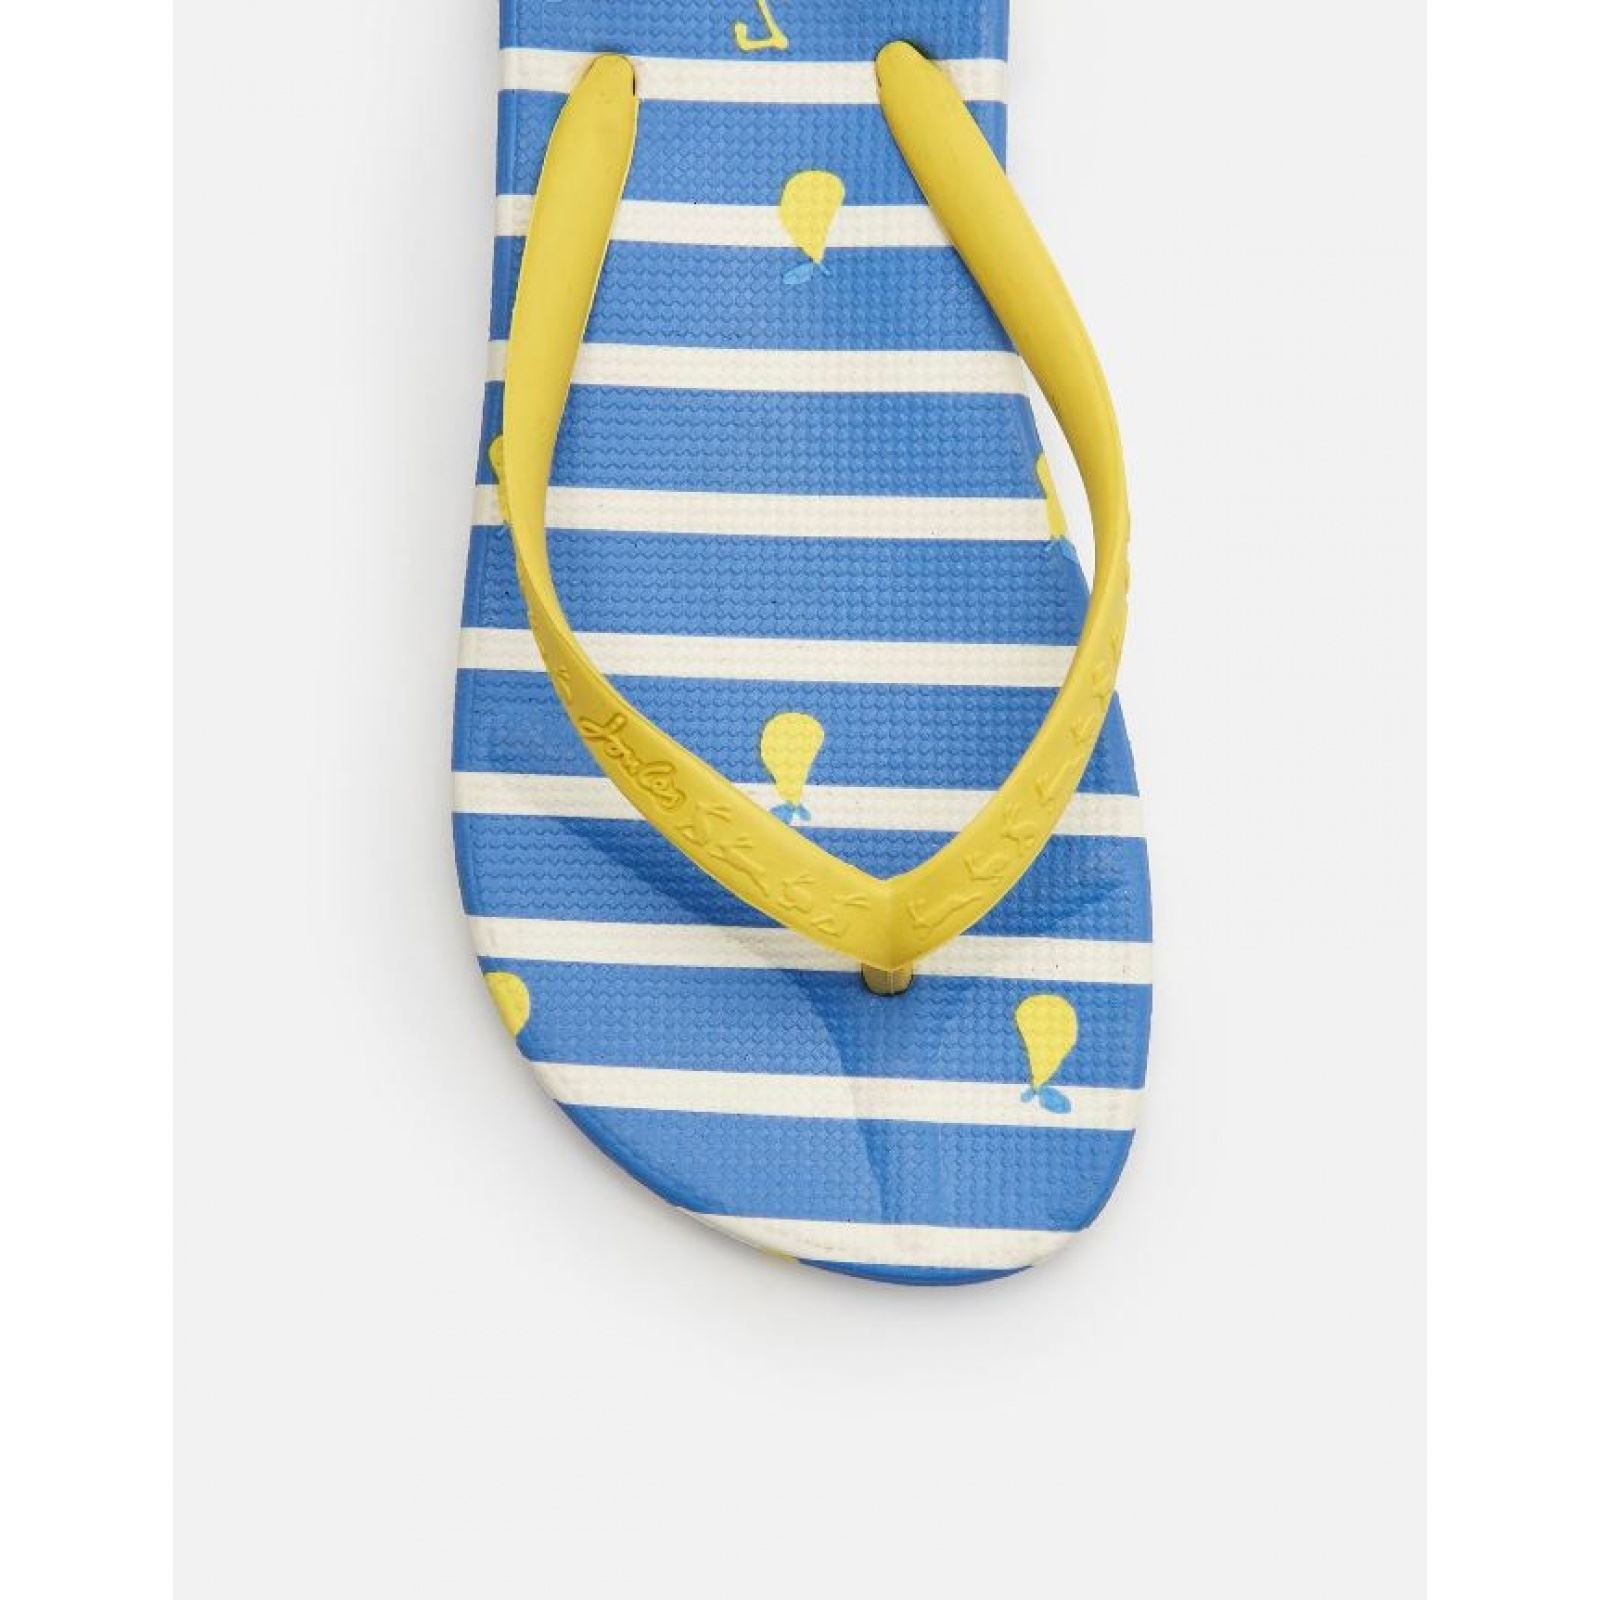 Joules-Flip-Flops-Sandals-Summer-Flip-Flop-NEW-2019-COLOURS thumbnail 3